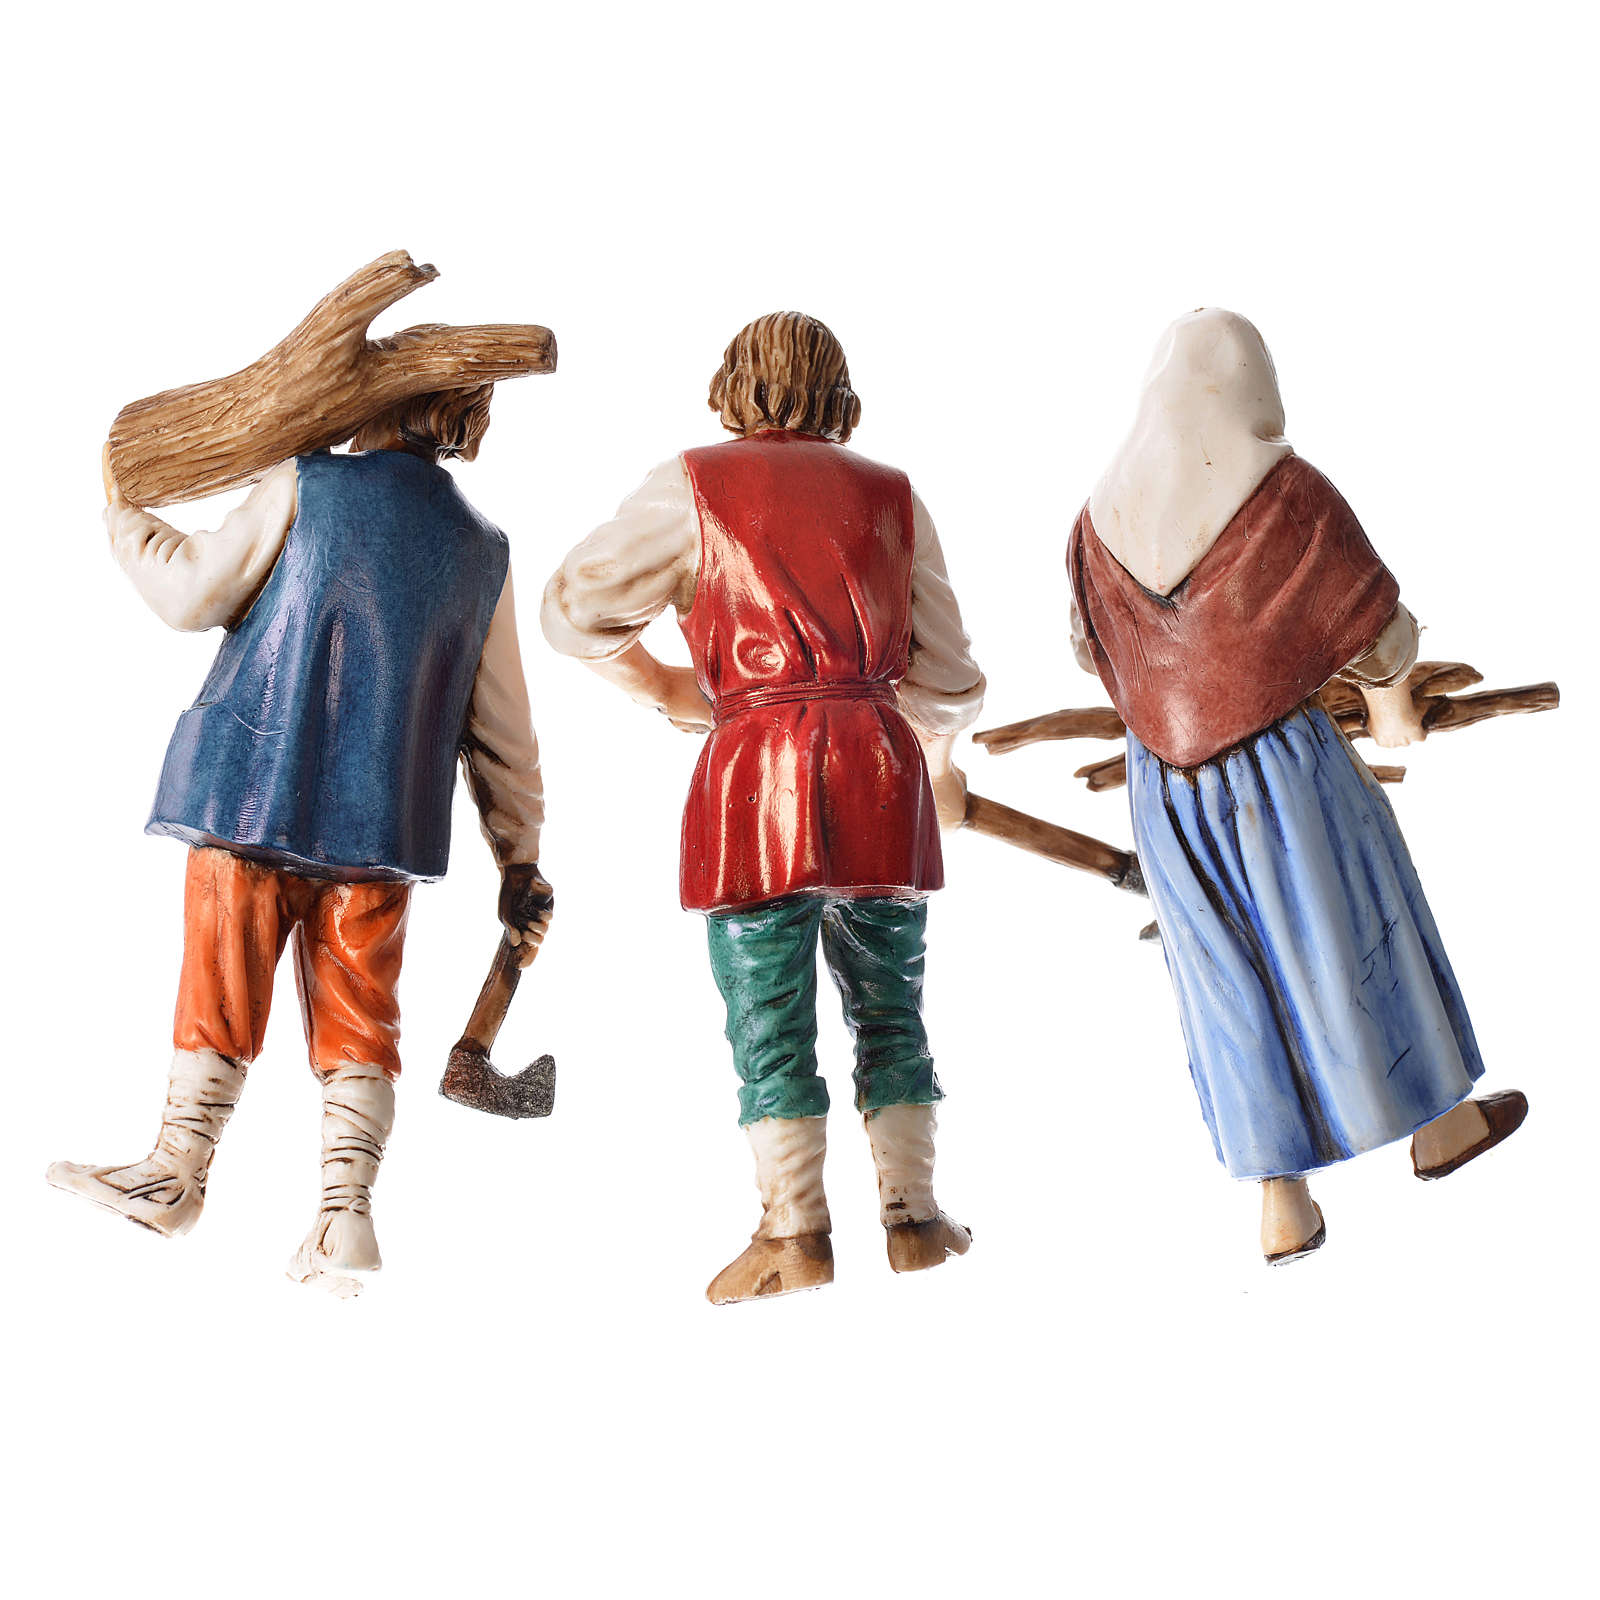 Woodcutters and farmer, 3 nativity figurines, 10cm Moranduzzo 4